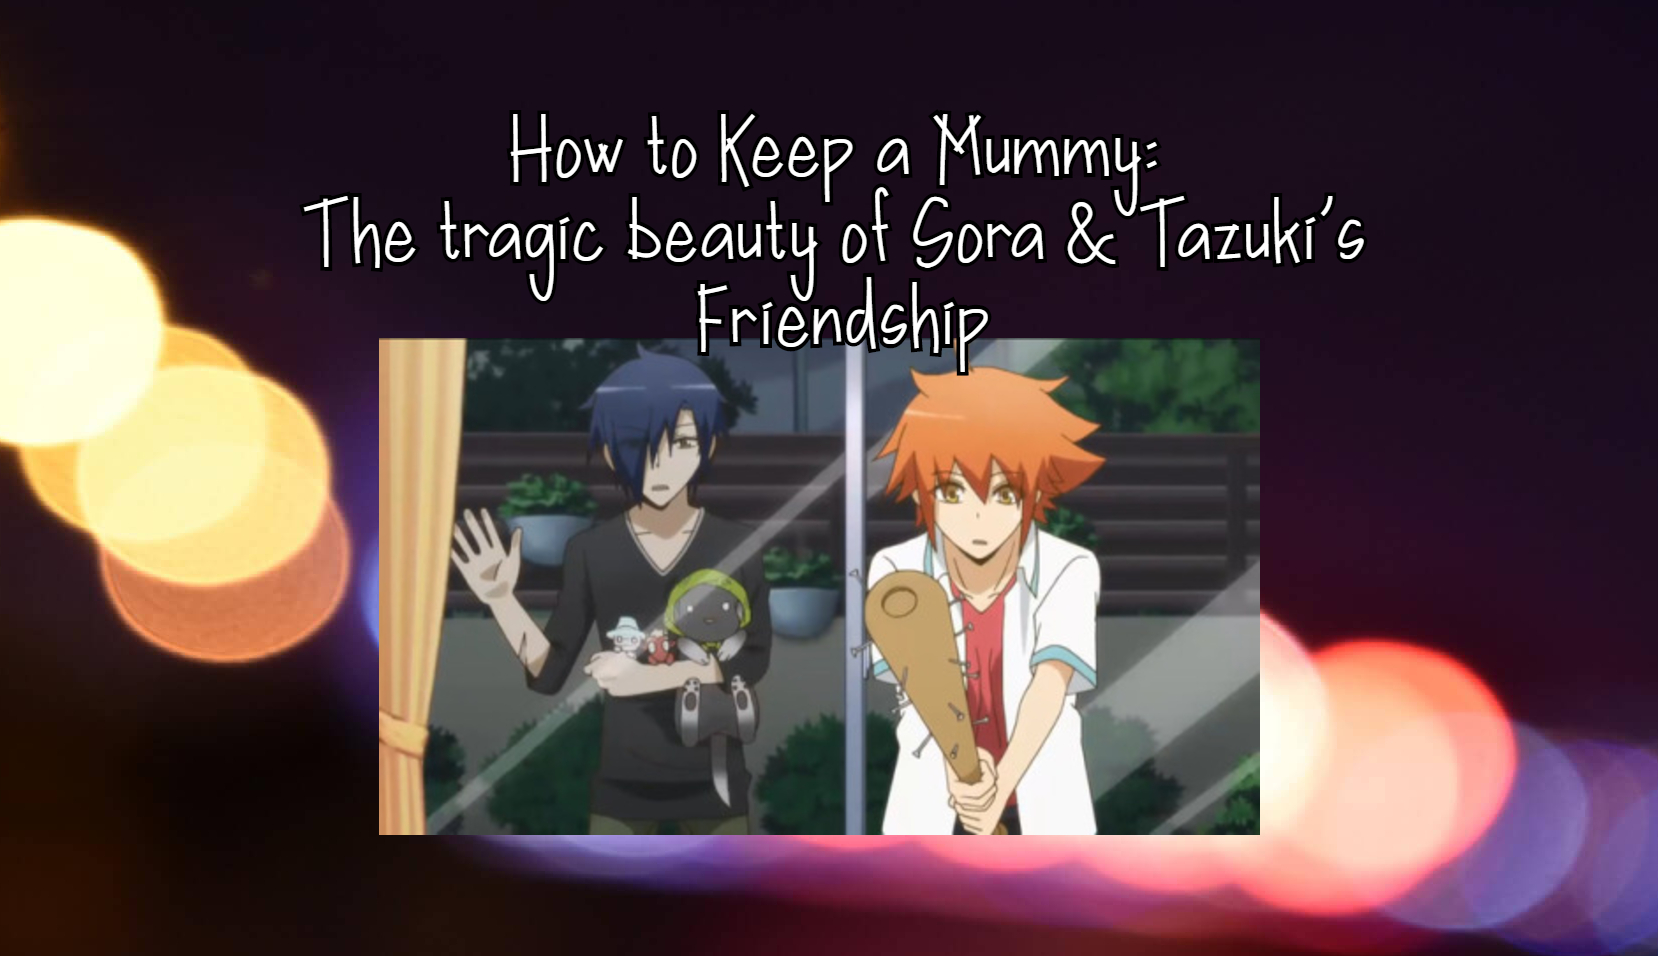 How To Keep A Mummy The Tragic Beauty Of Sora Tazuki S Friendship We Be Bloggin How to keep a mummy wiki. how to keep a mummy the tragic beauty